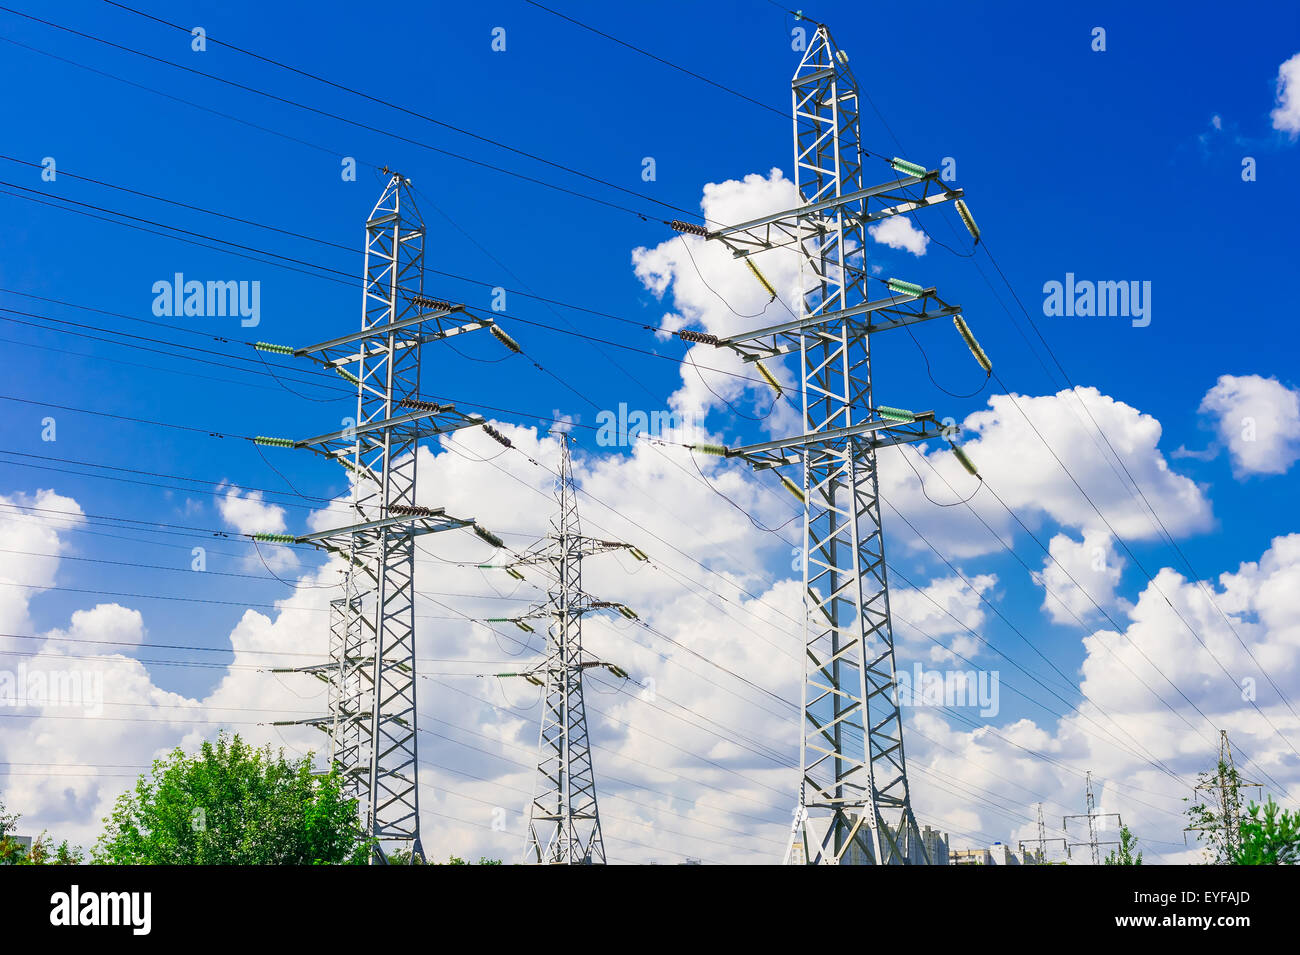 Power line towers on blue sky background - Stock Image